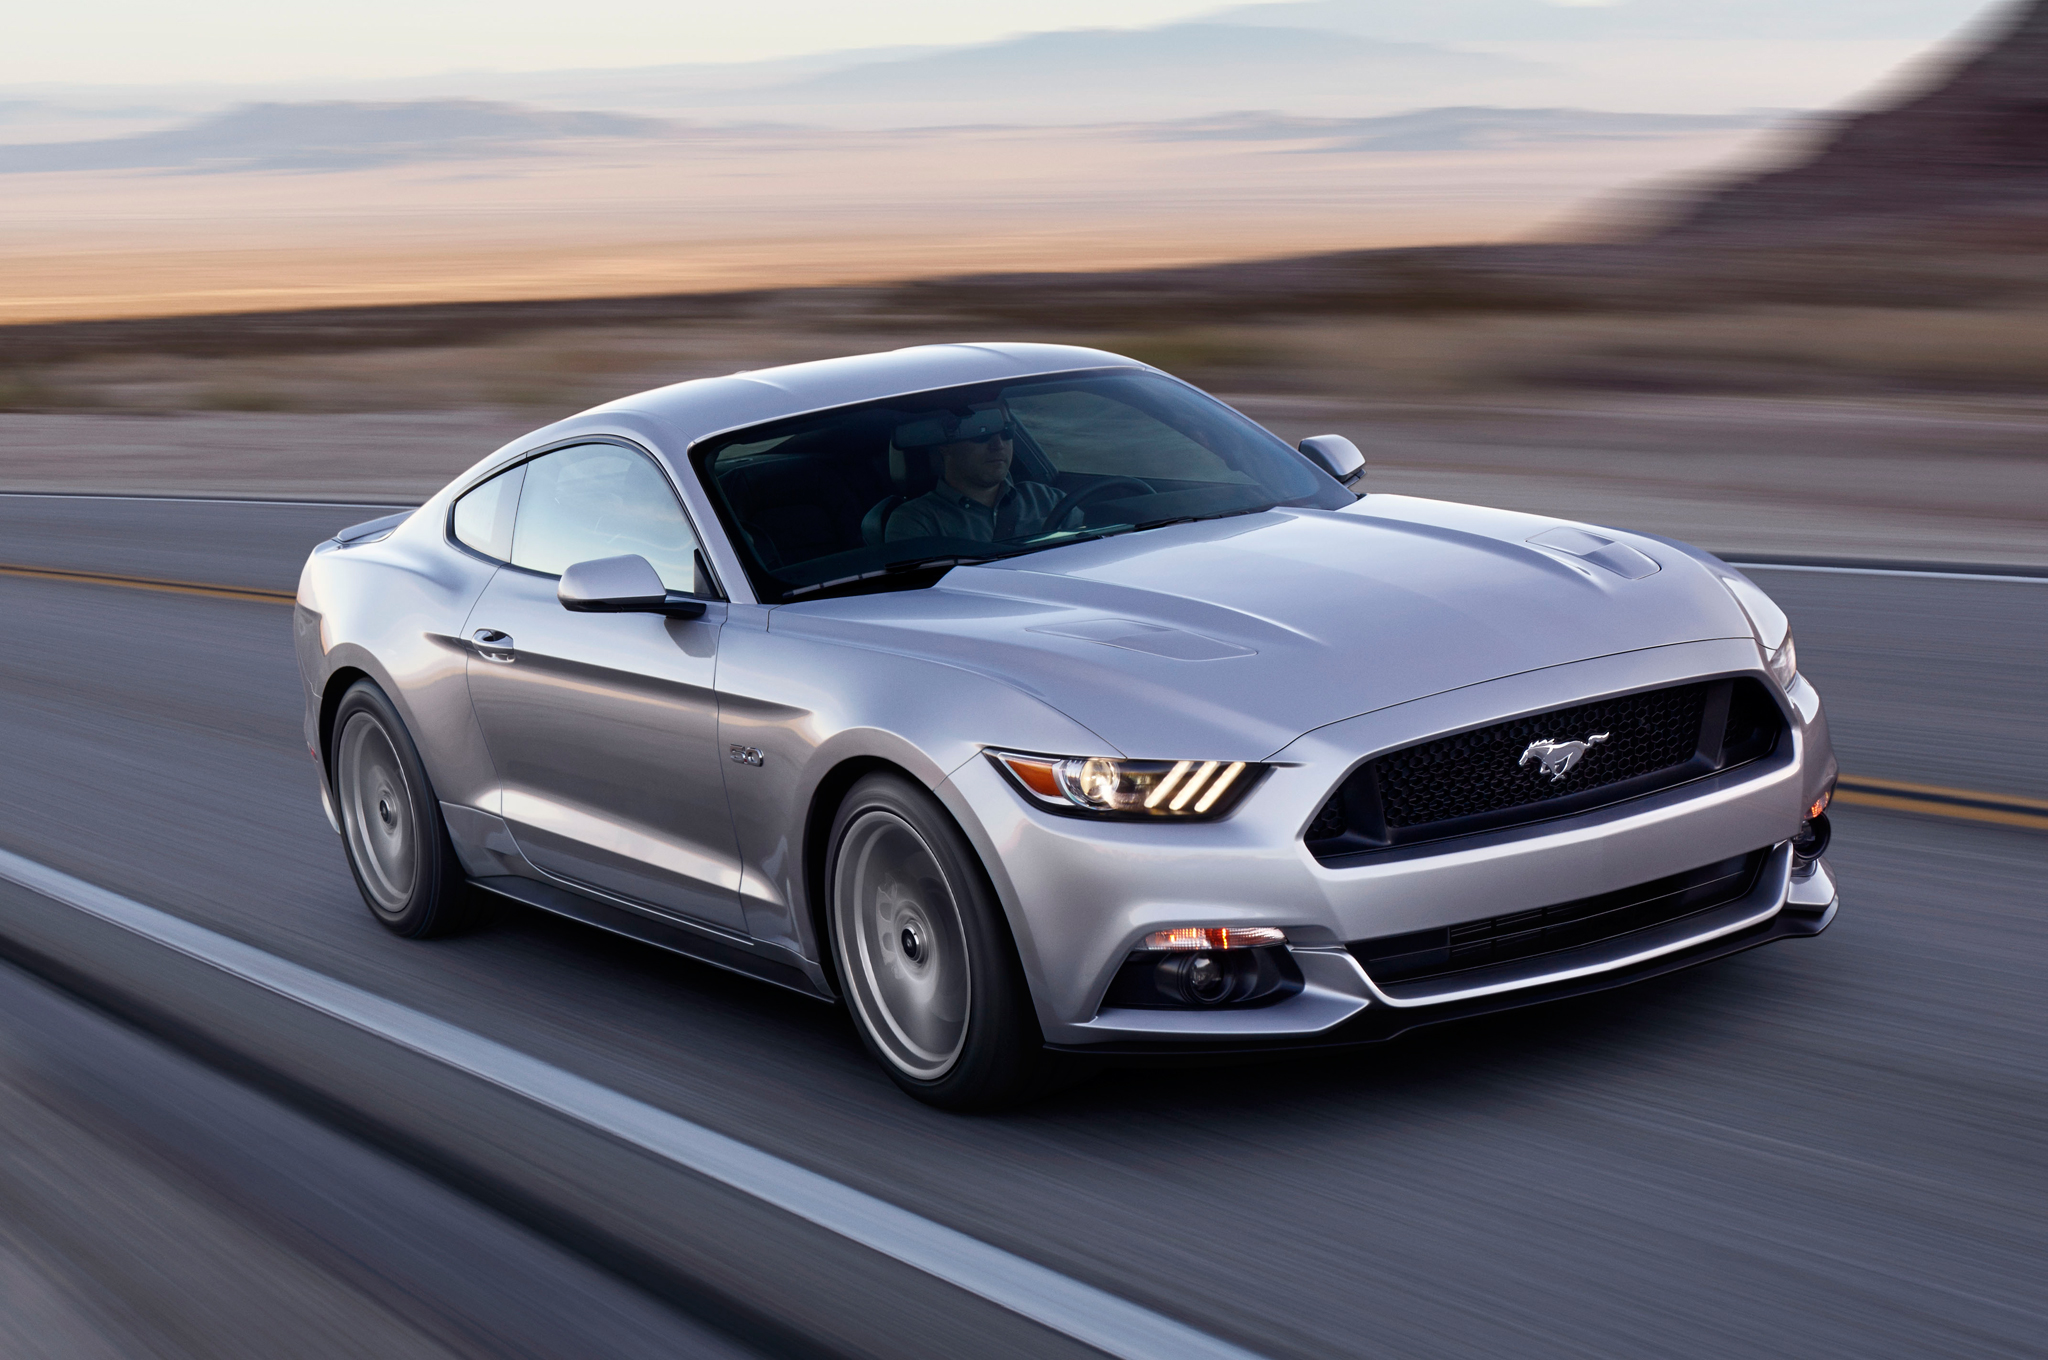 2015 Ford Mustang #2